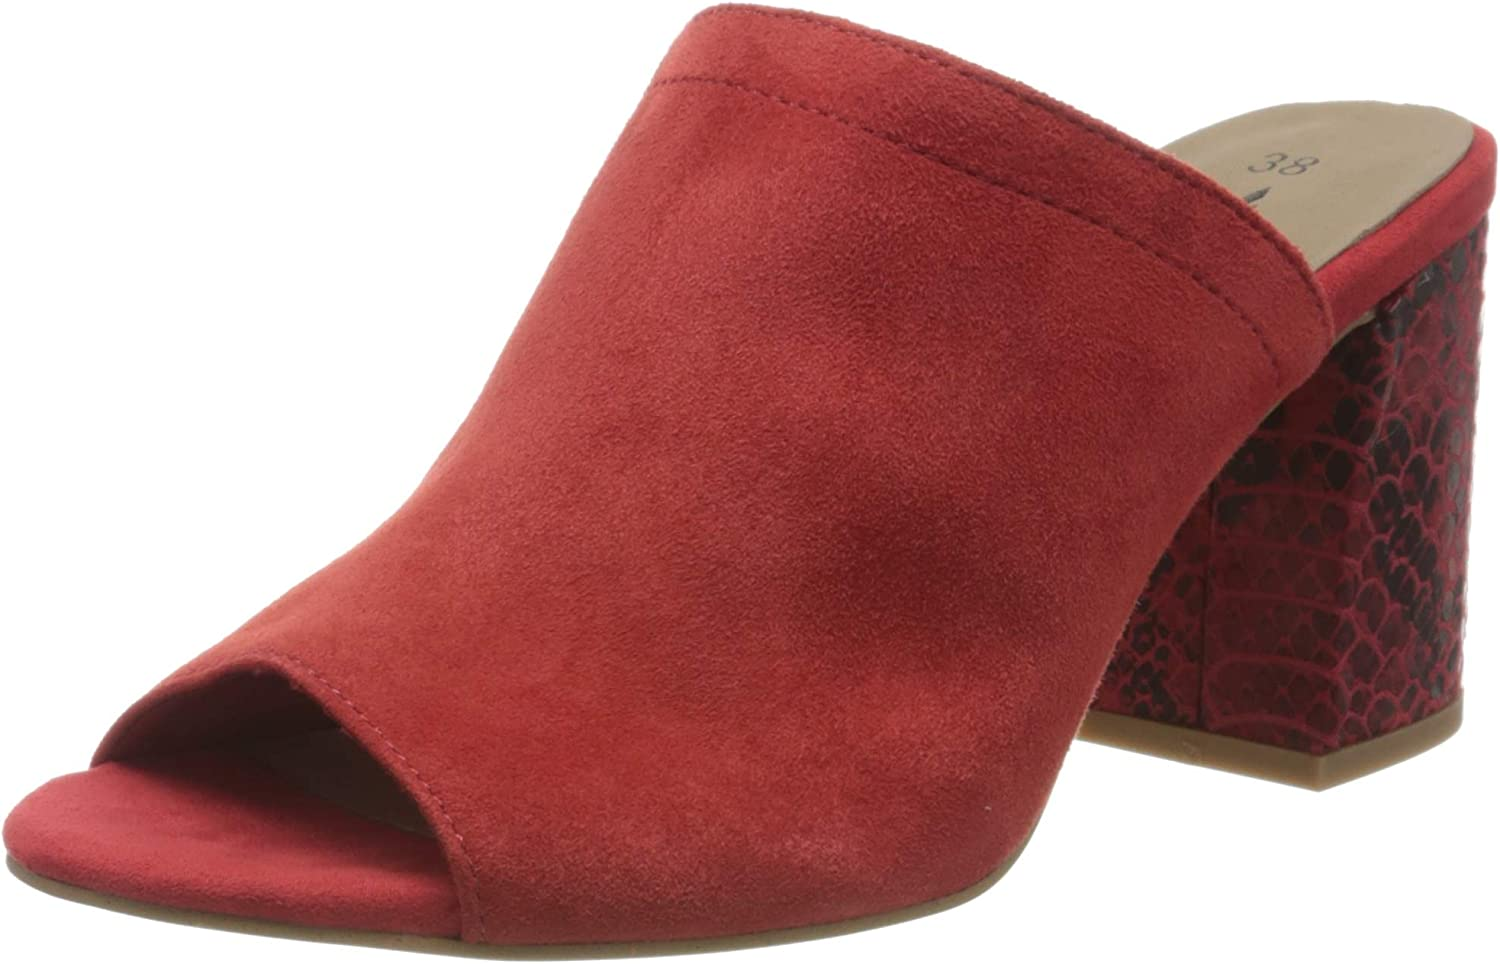 Popular brand in the world Tamaris We OFFer at cheap prices Women's Mules